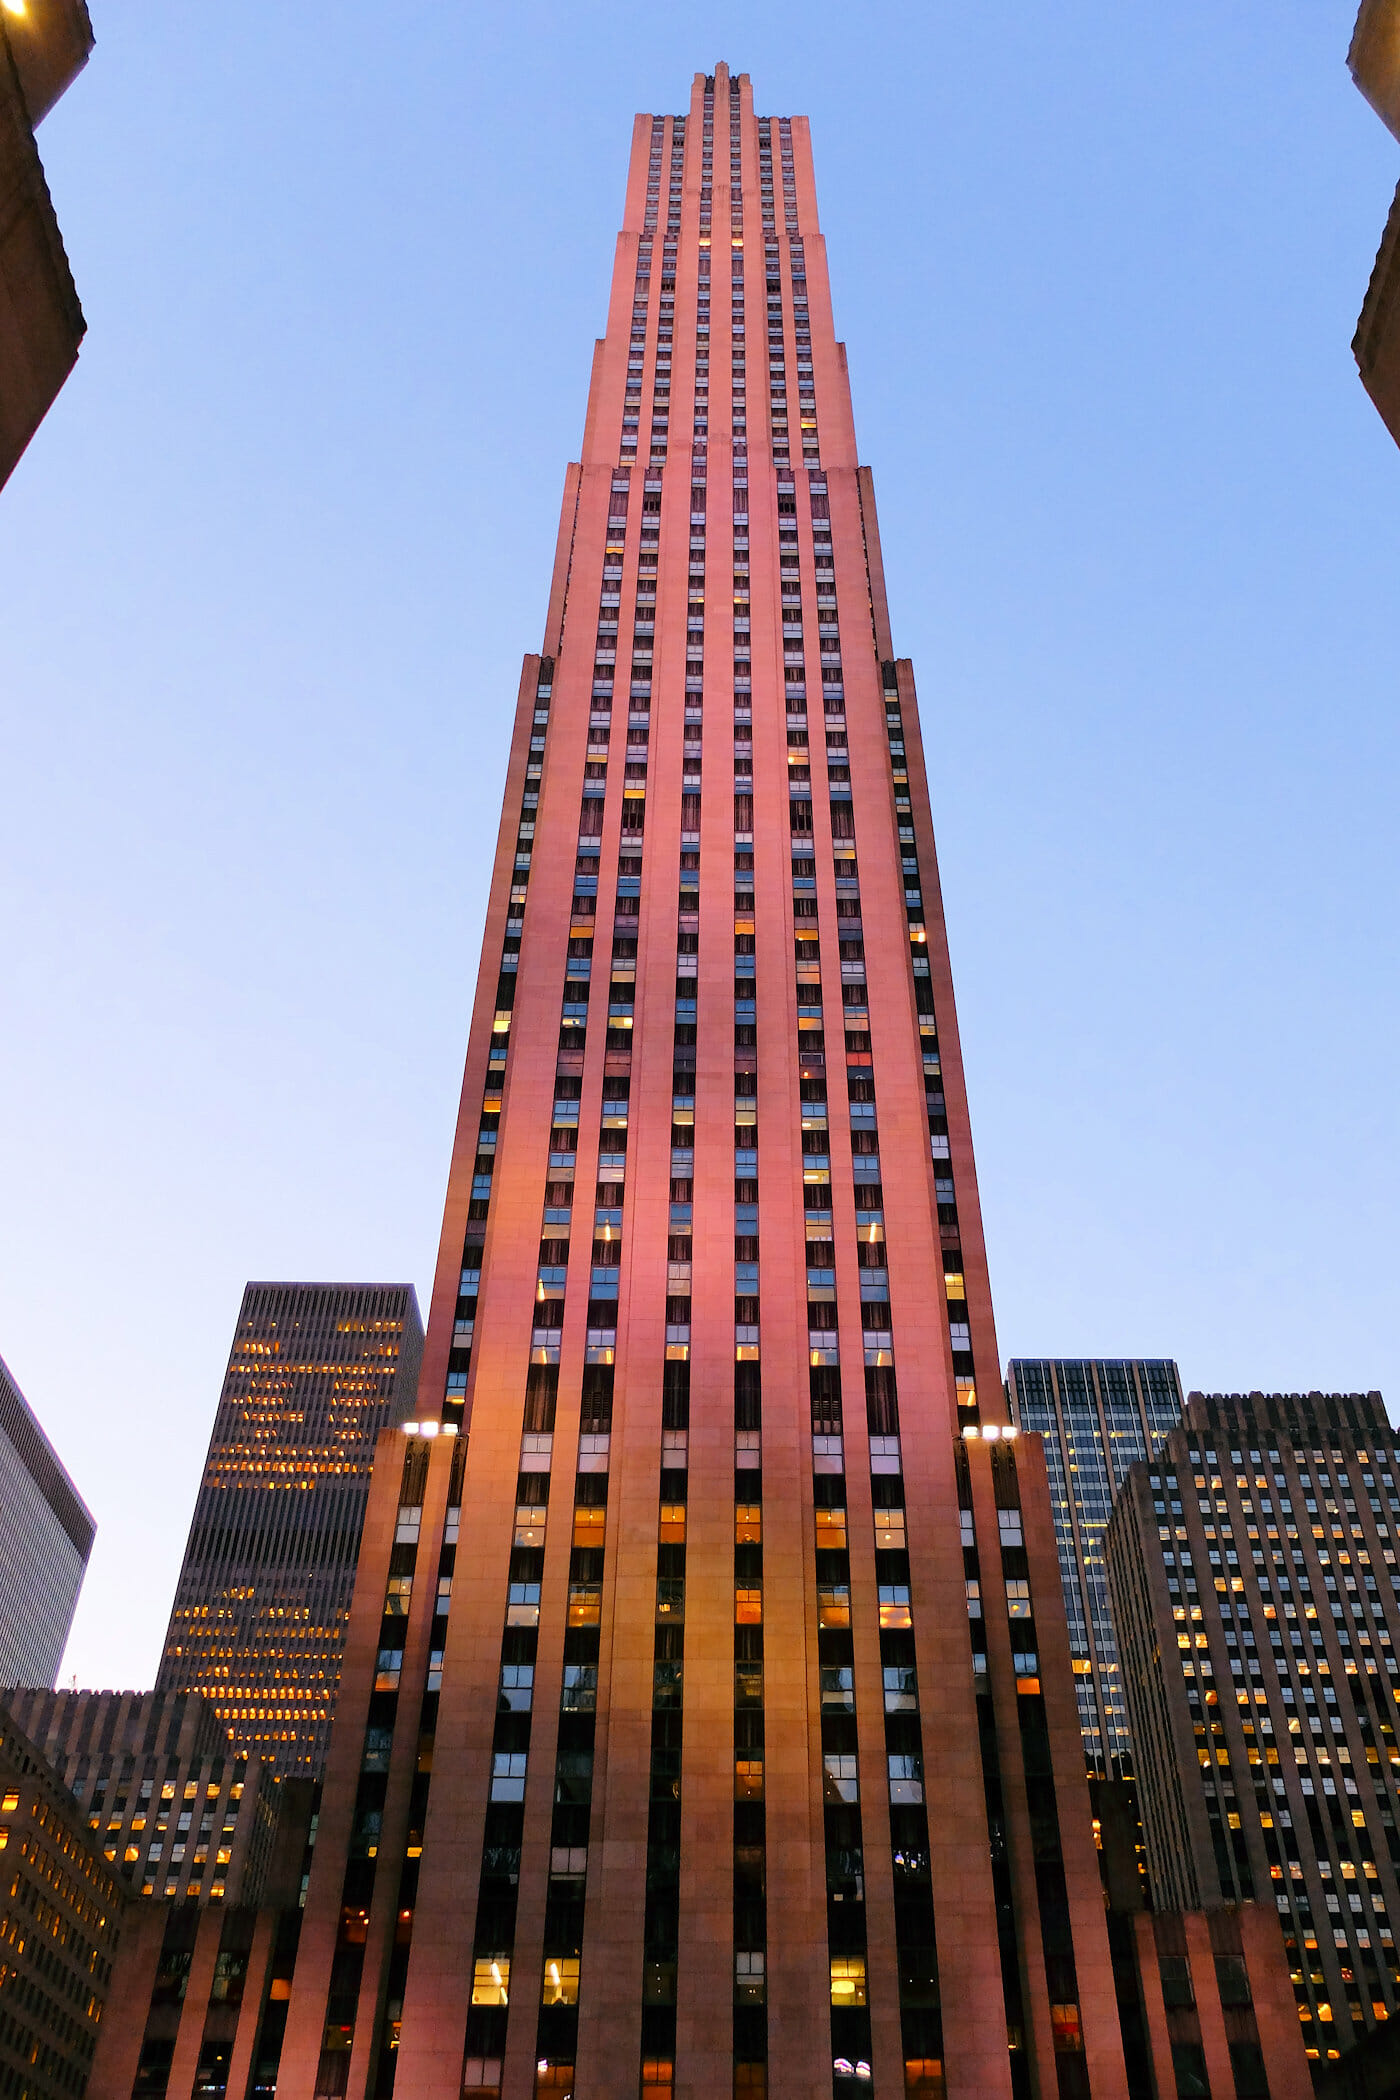 Rockefeller Center i New York - Comcast-bygningen